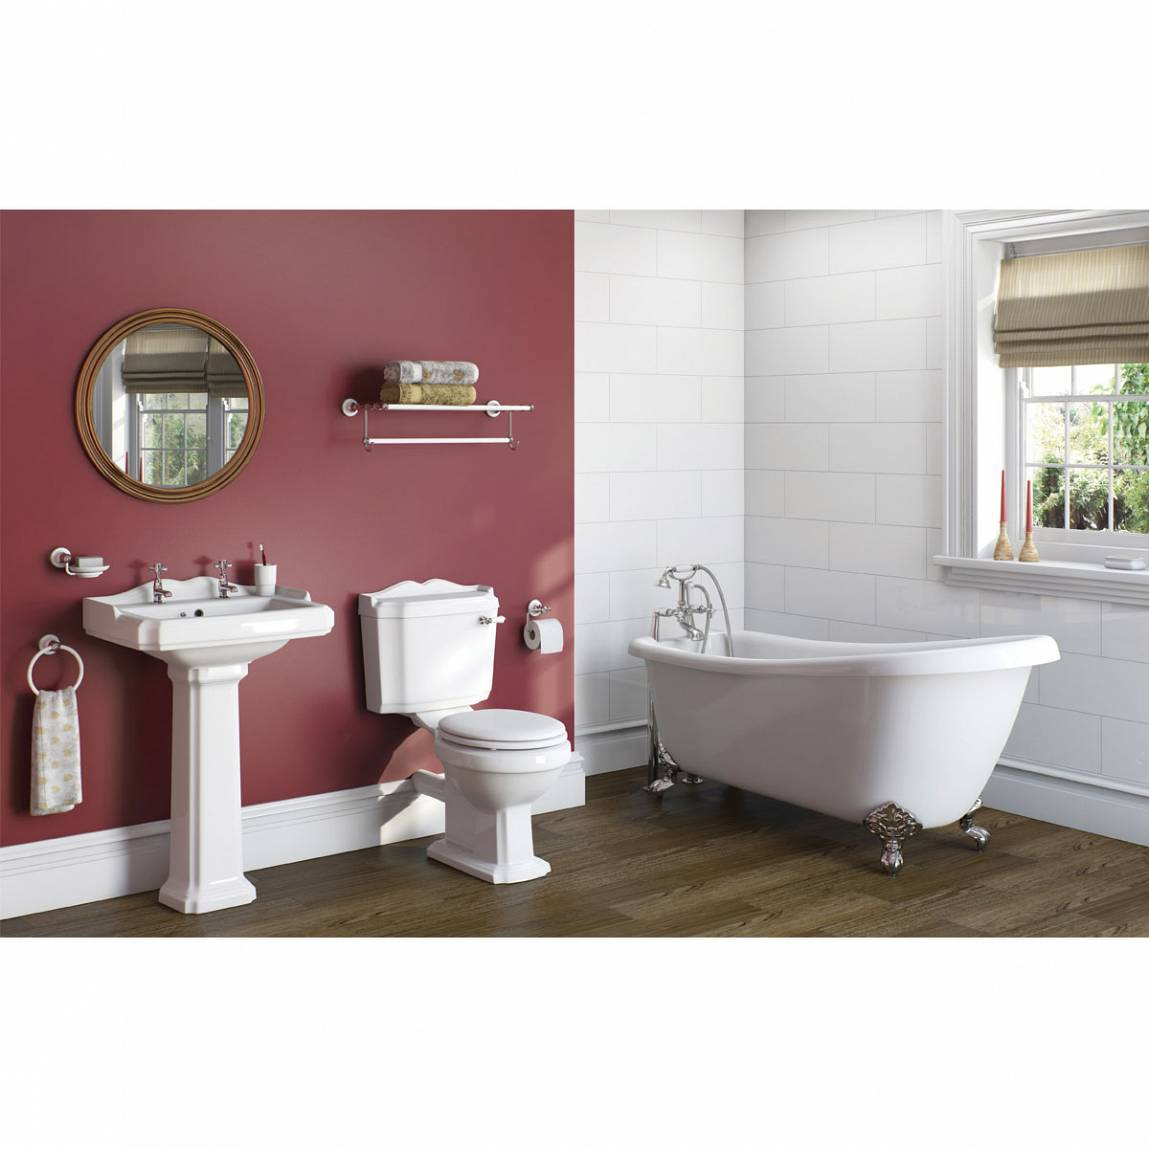 Image of Winchester Bathroom suite & Slipper Bath With Ball and Claw Feet